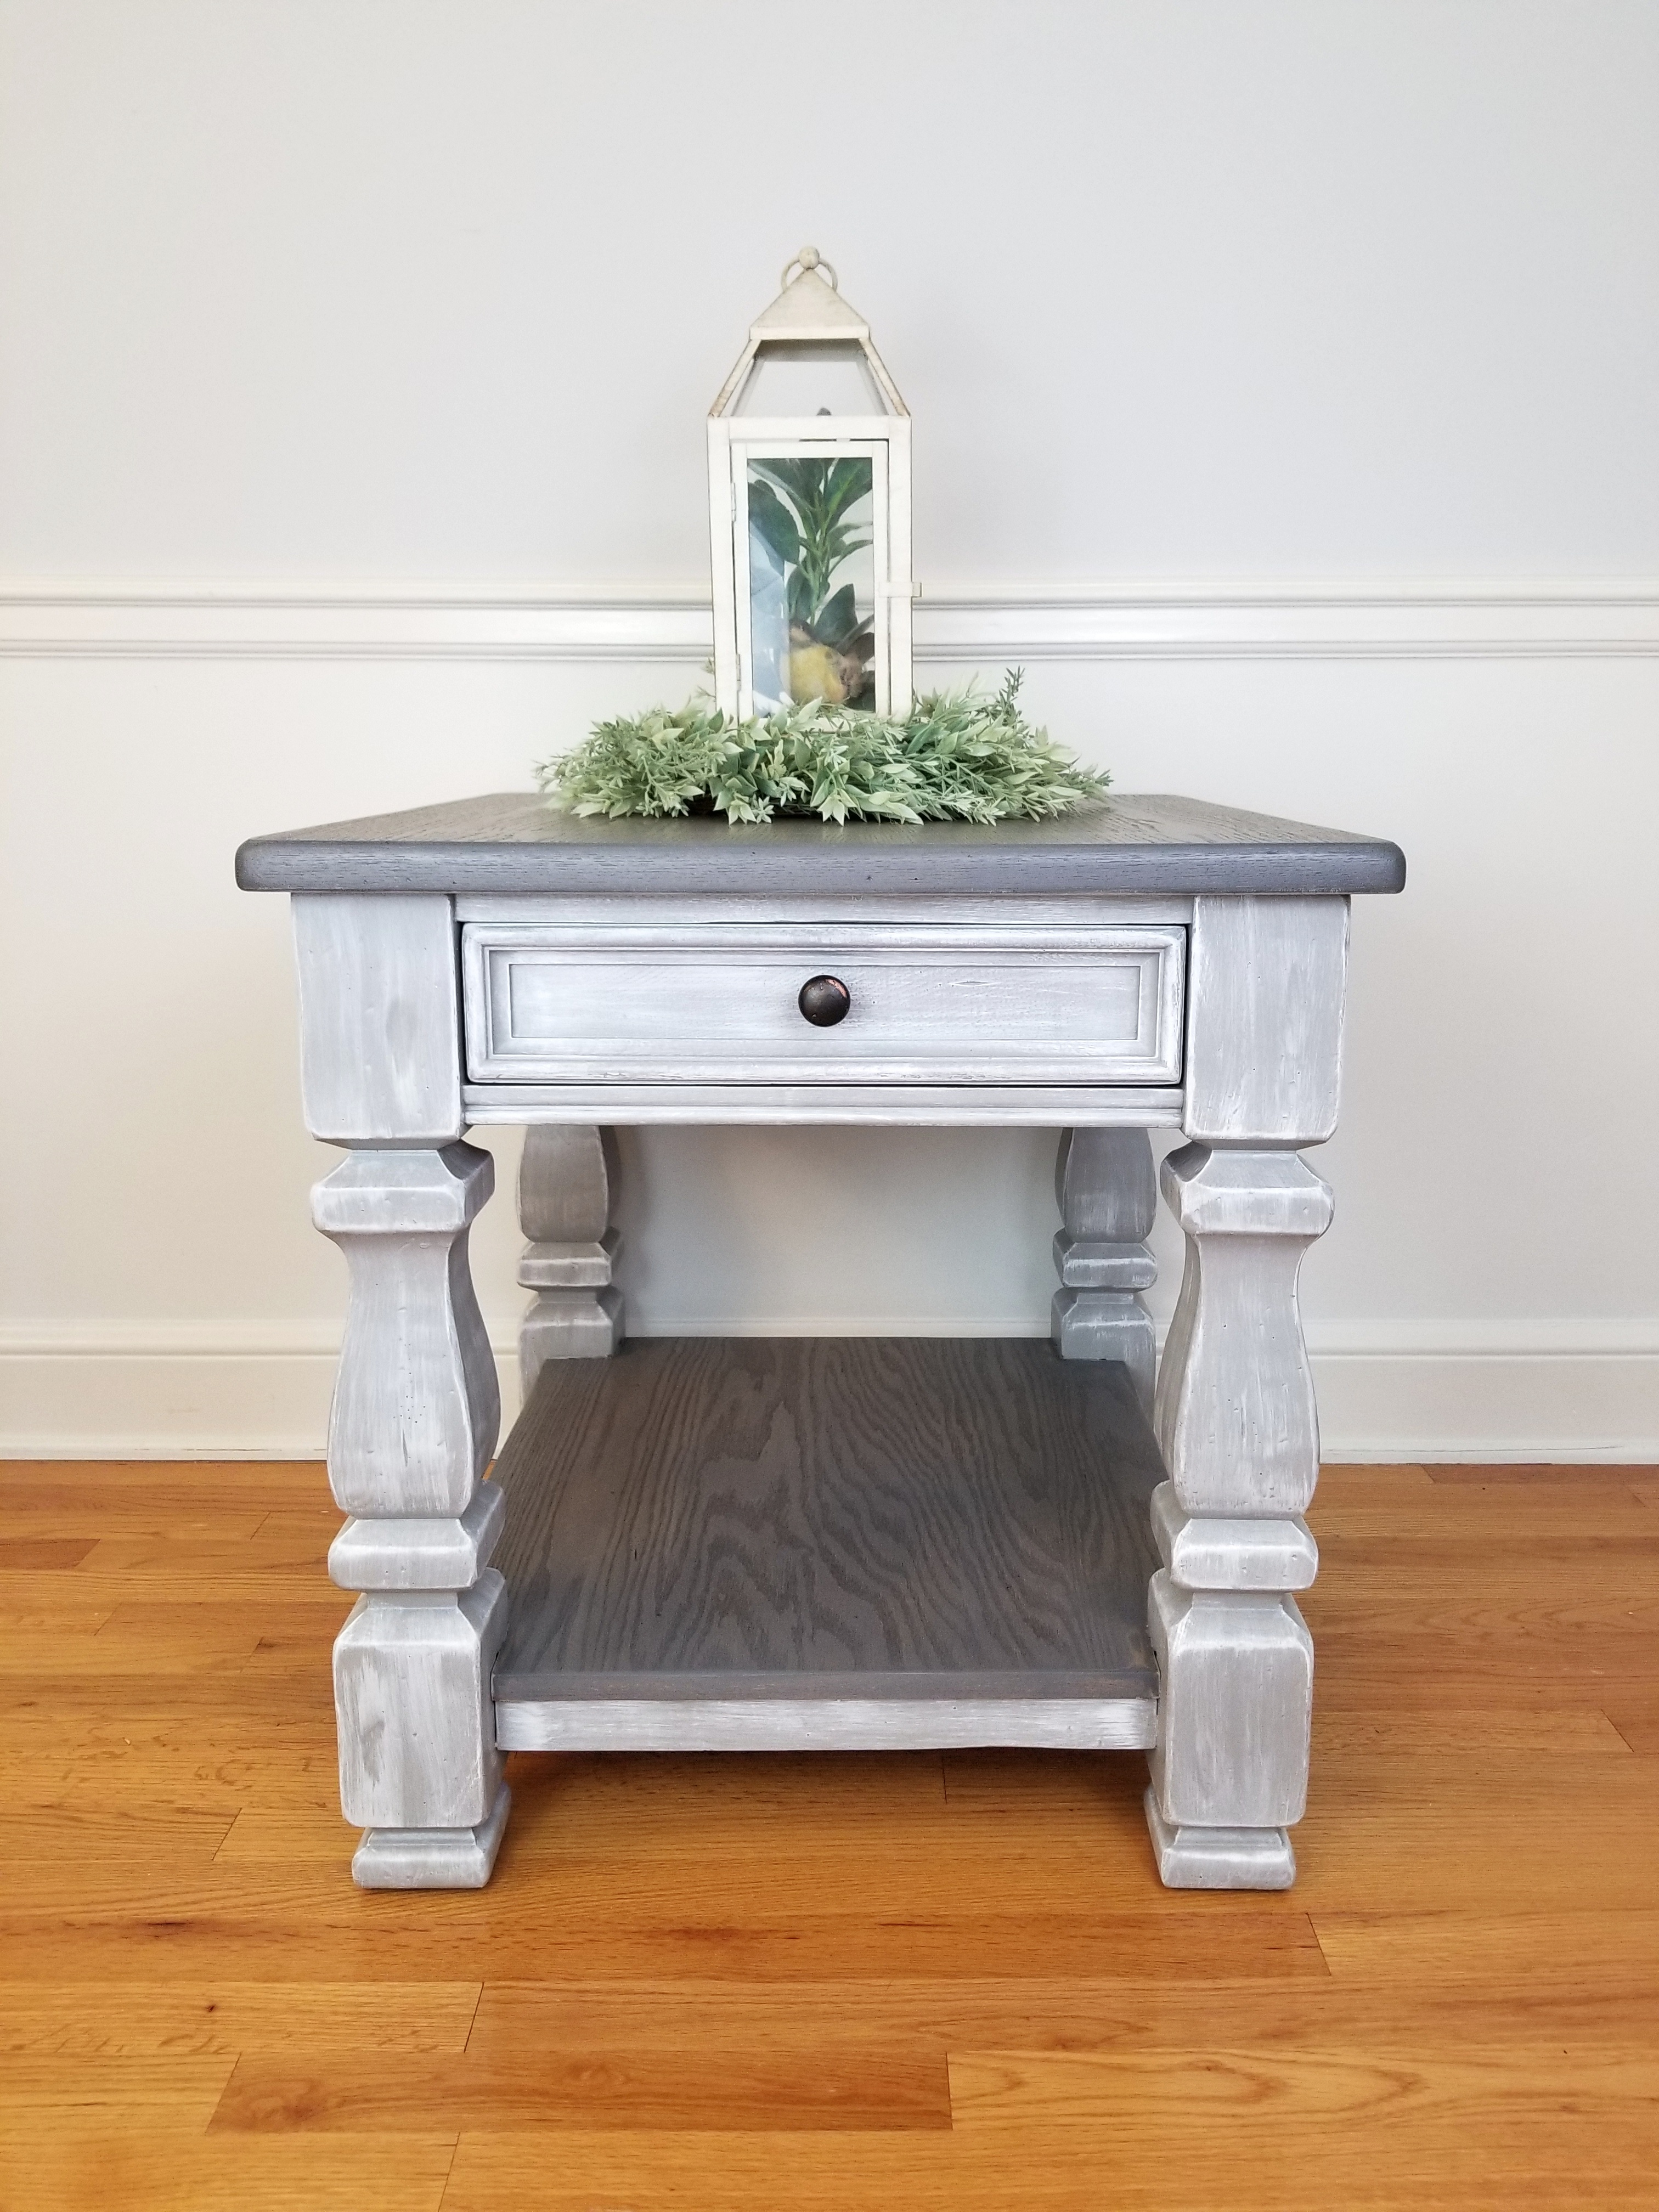 End Table - Weathered Gray and Textured